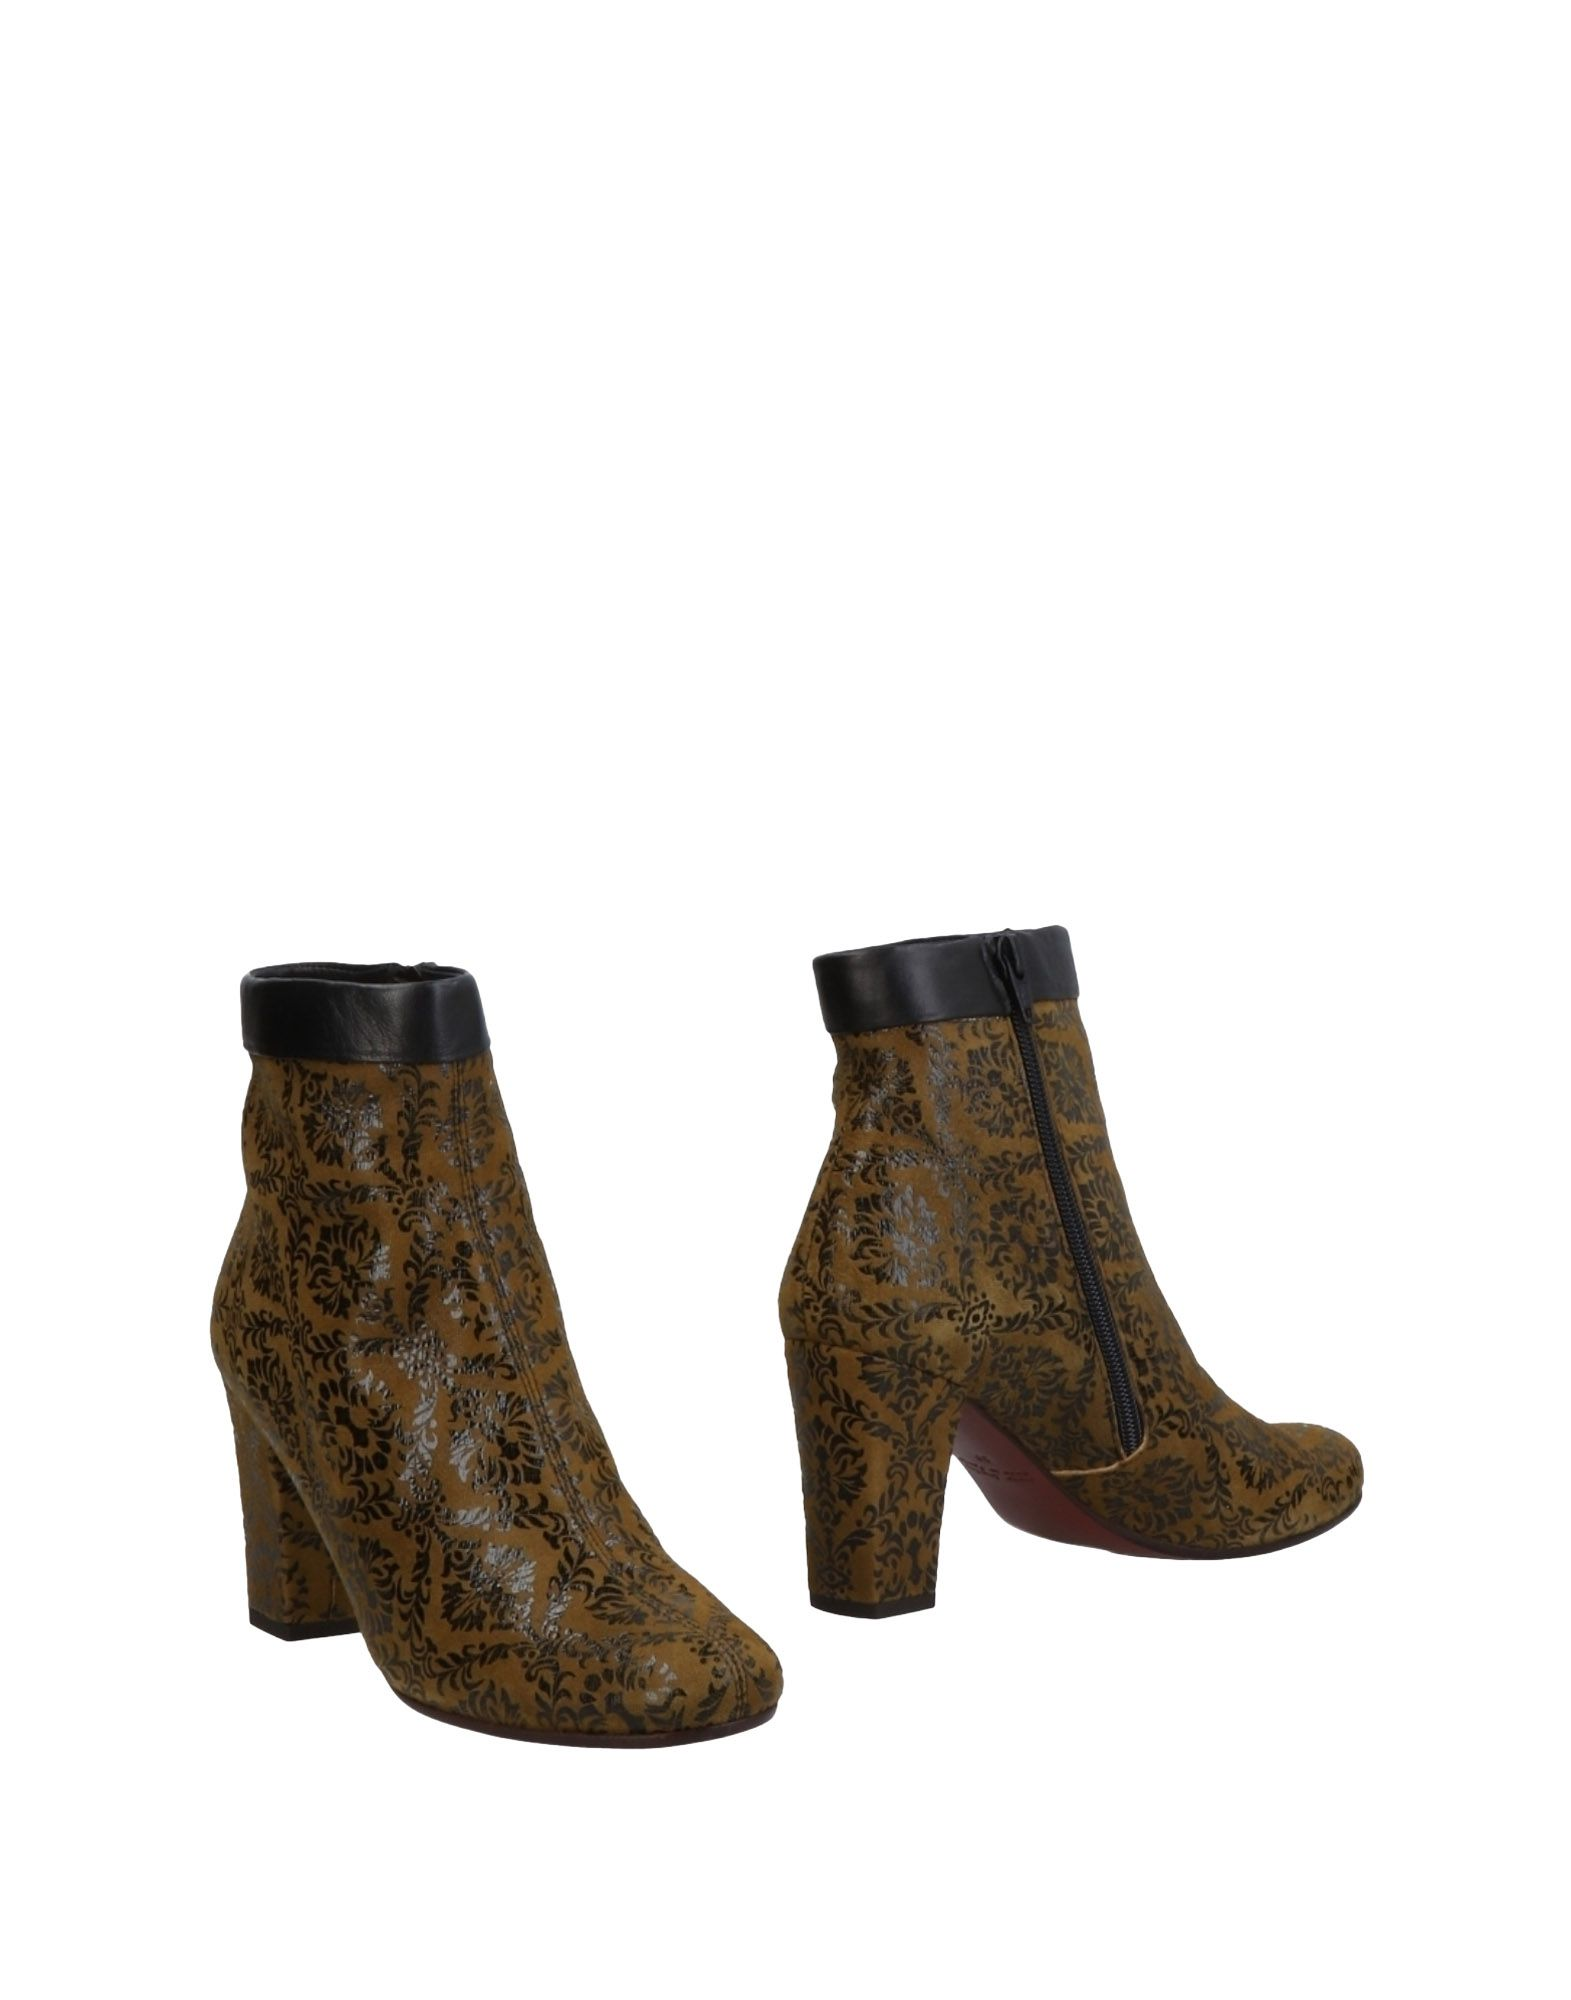 Chie Mihara Ankle Boot - Women Chie Mihara Ankle Boots Boots Ankle online on  Australia - 11463119NF 4d200c